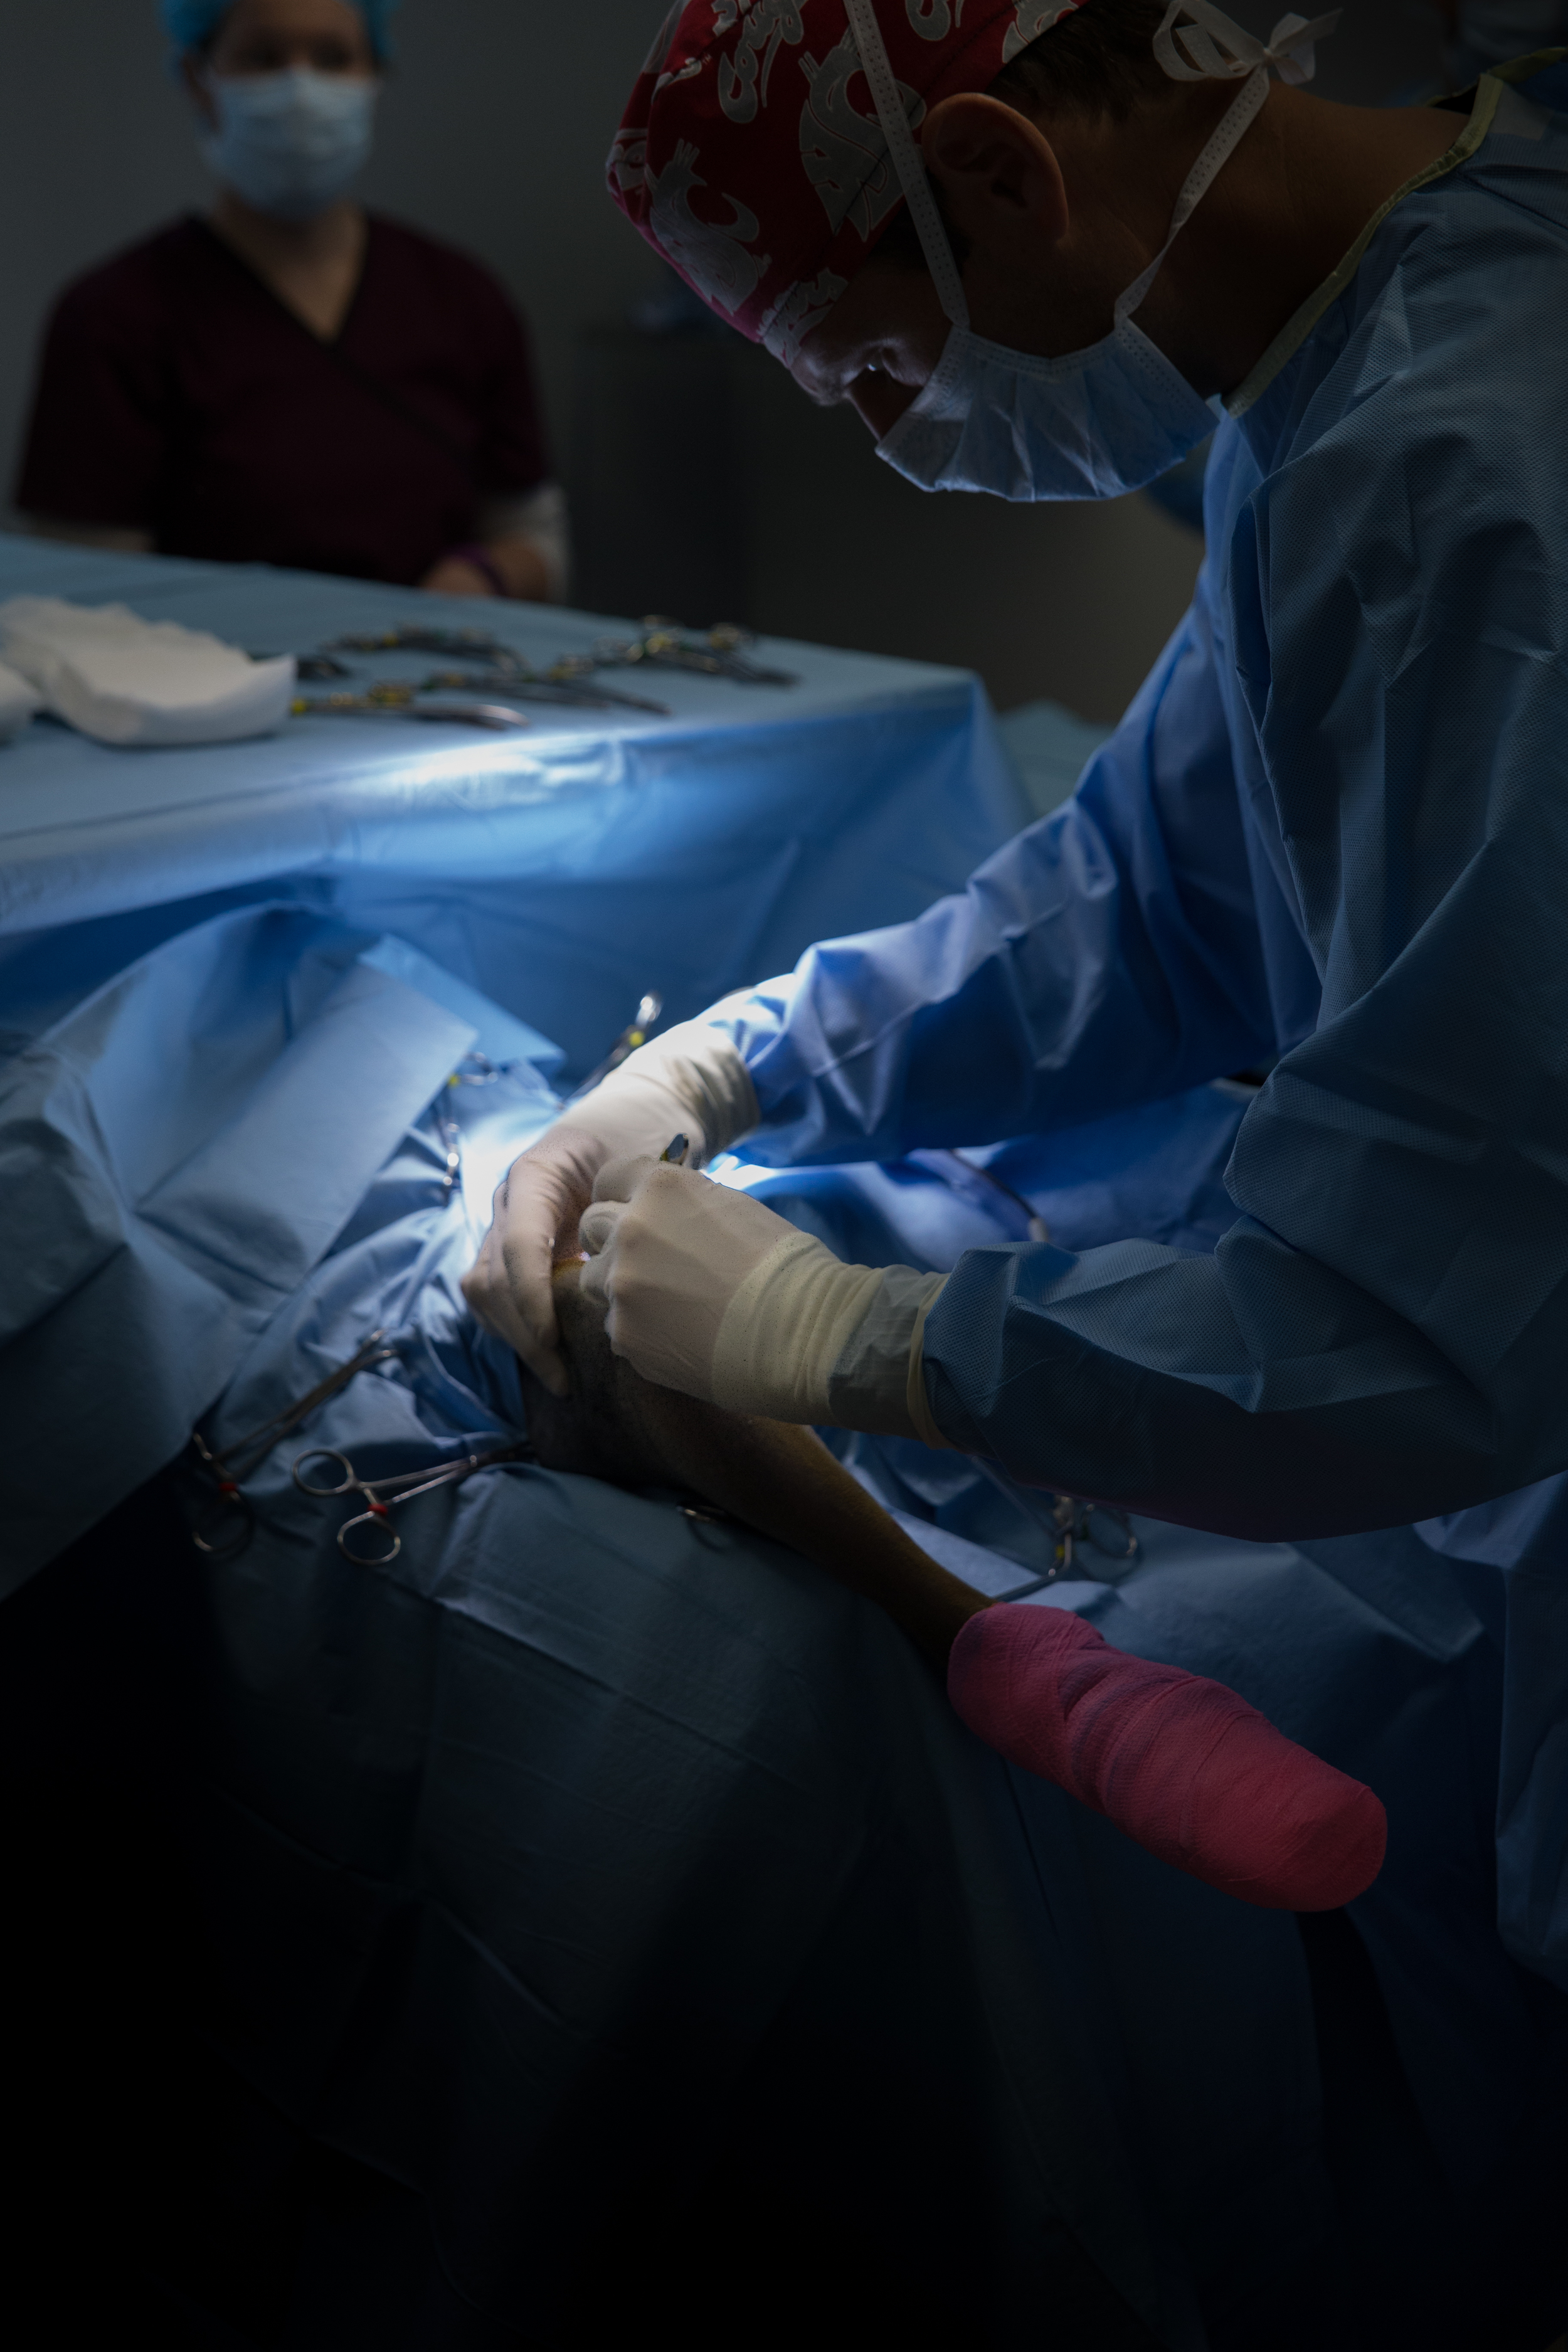 Dr. Newton making the initial incision. The surgical field is very well draped for sterile protection. Even the portions of the patient are wrapped in sterile material to ensure complete protection.